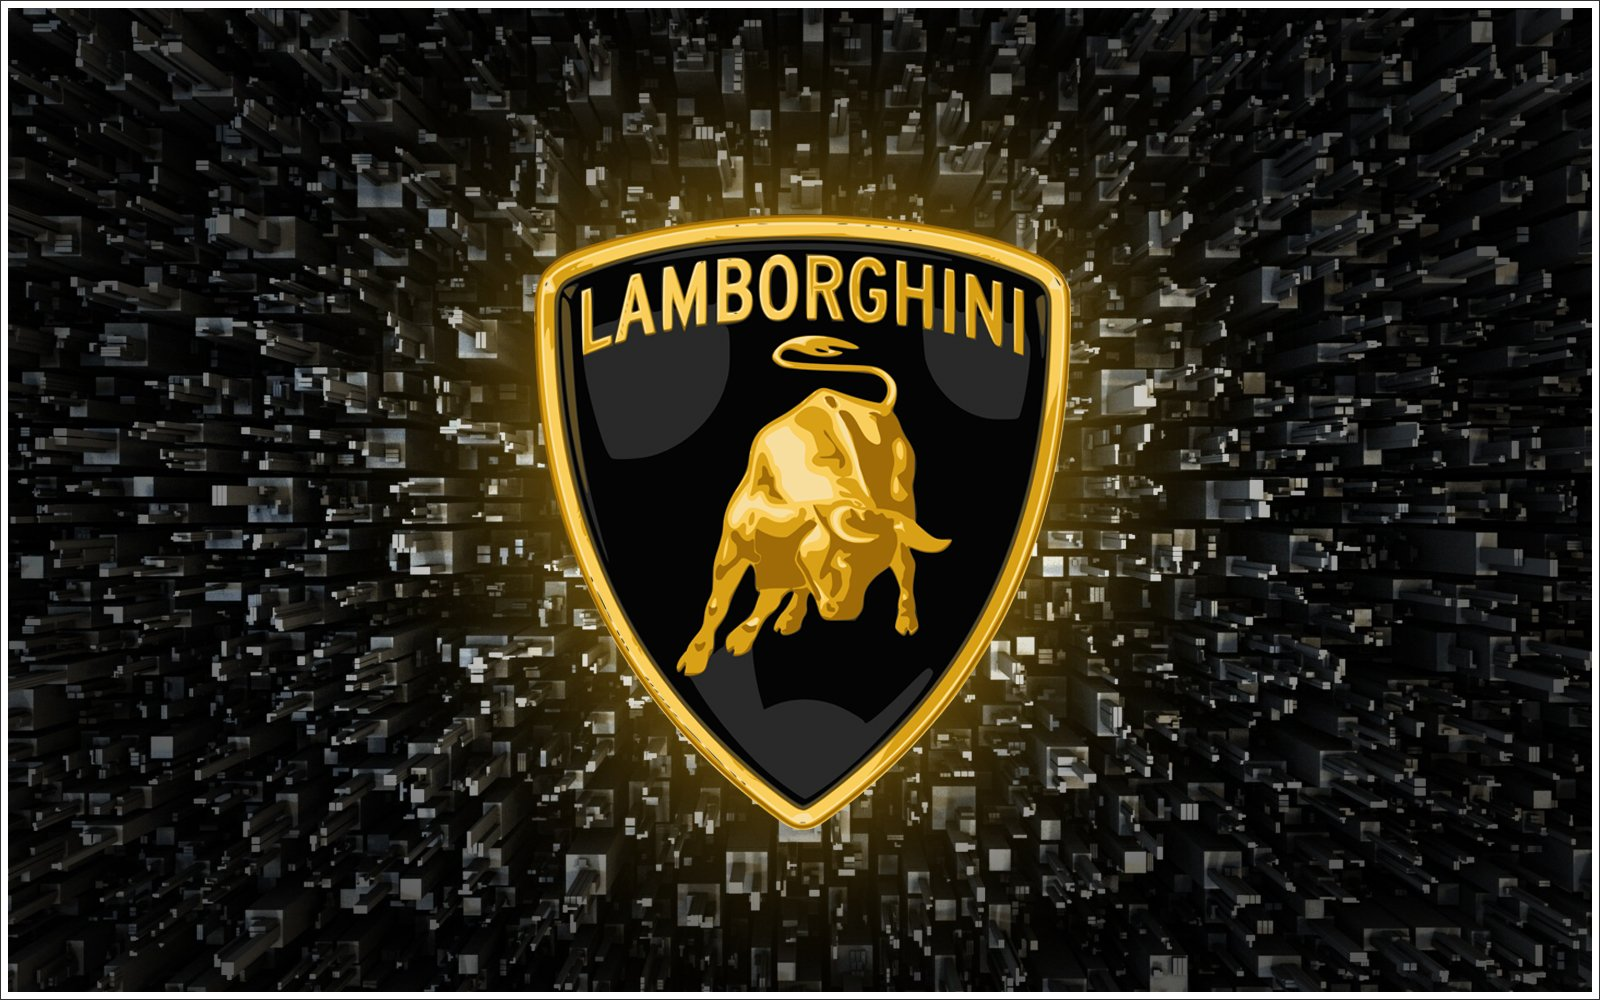 lamborghini symbol description